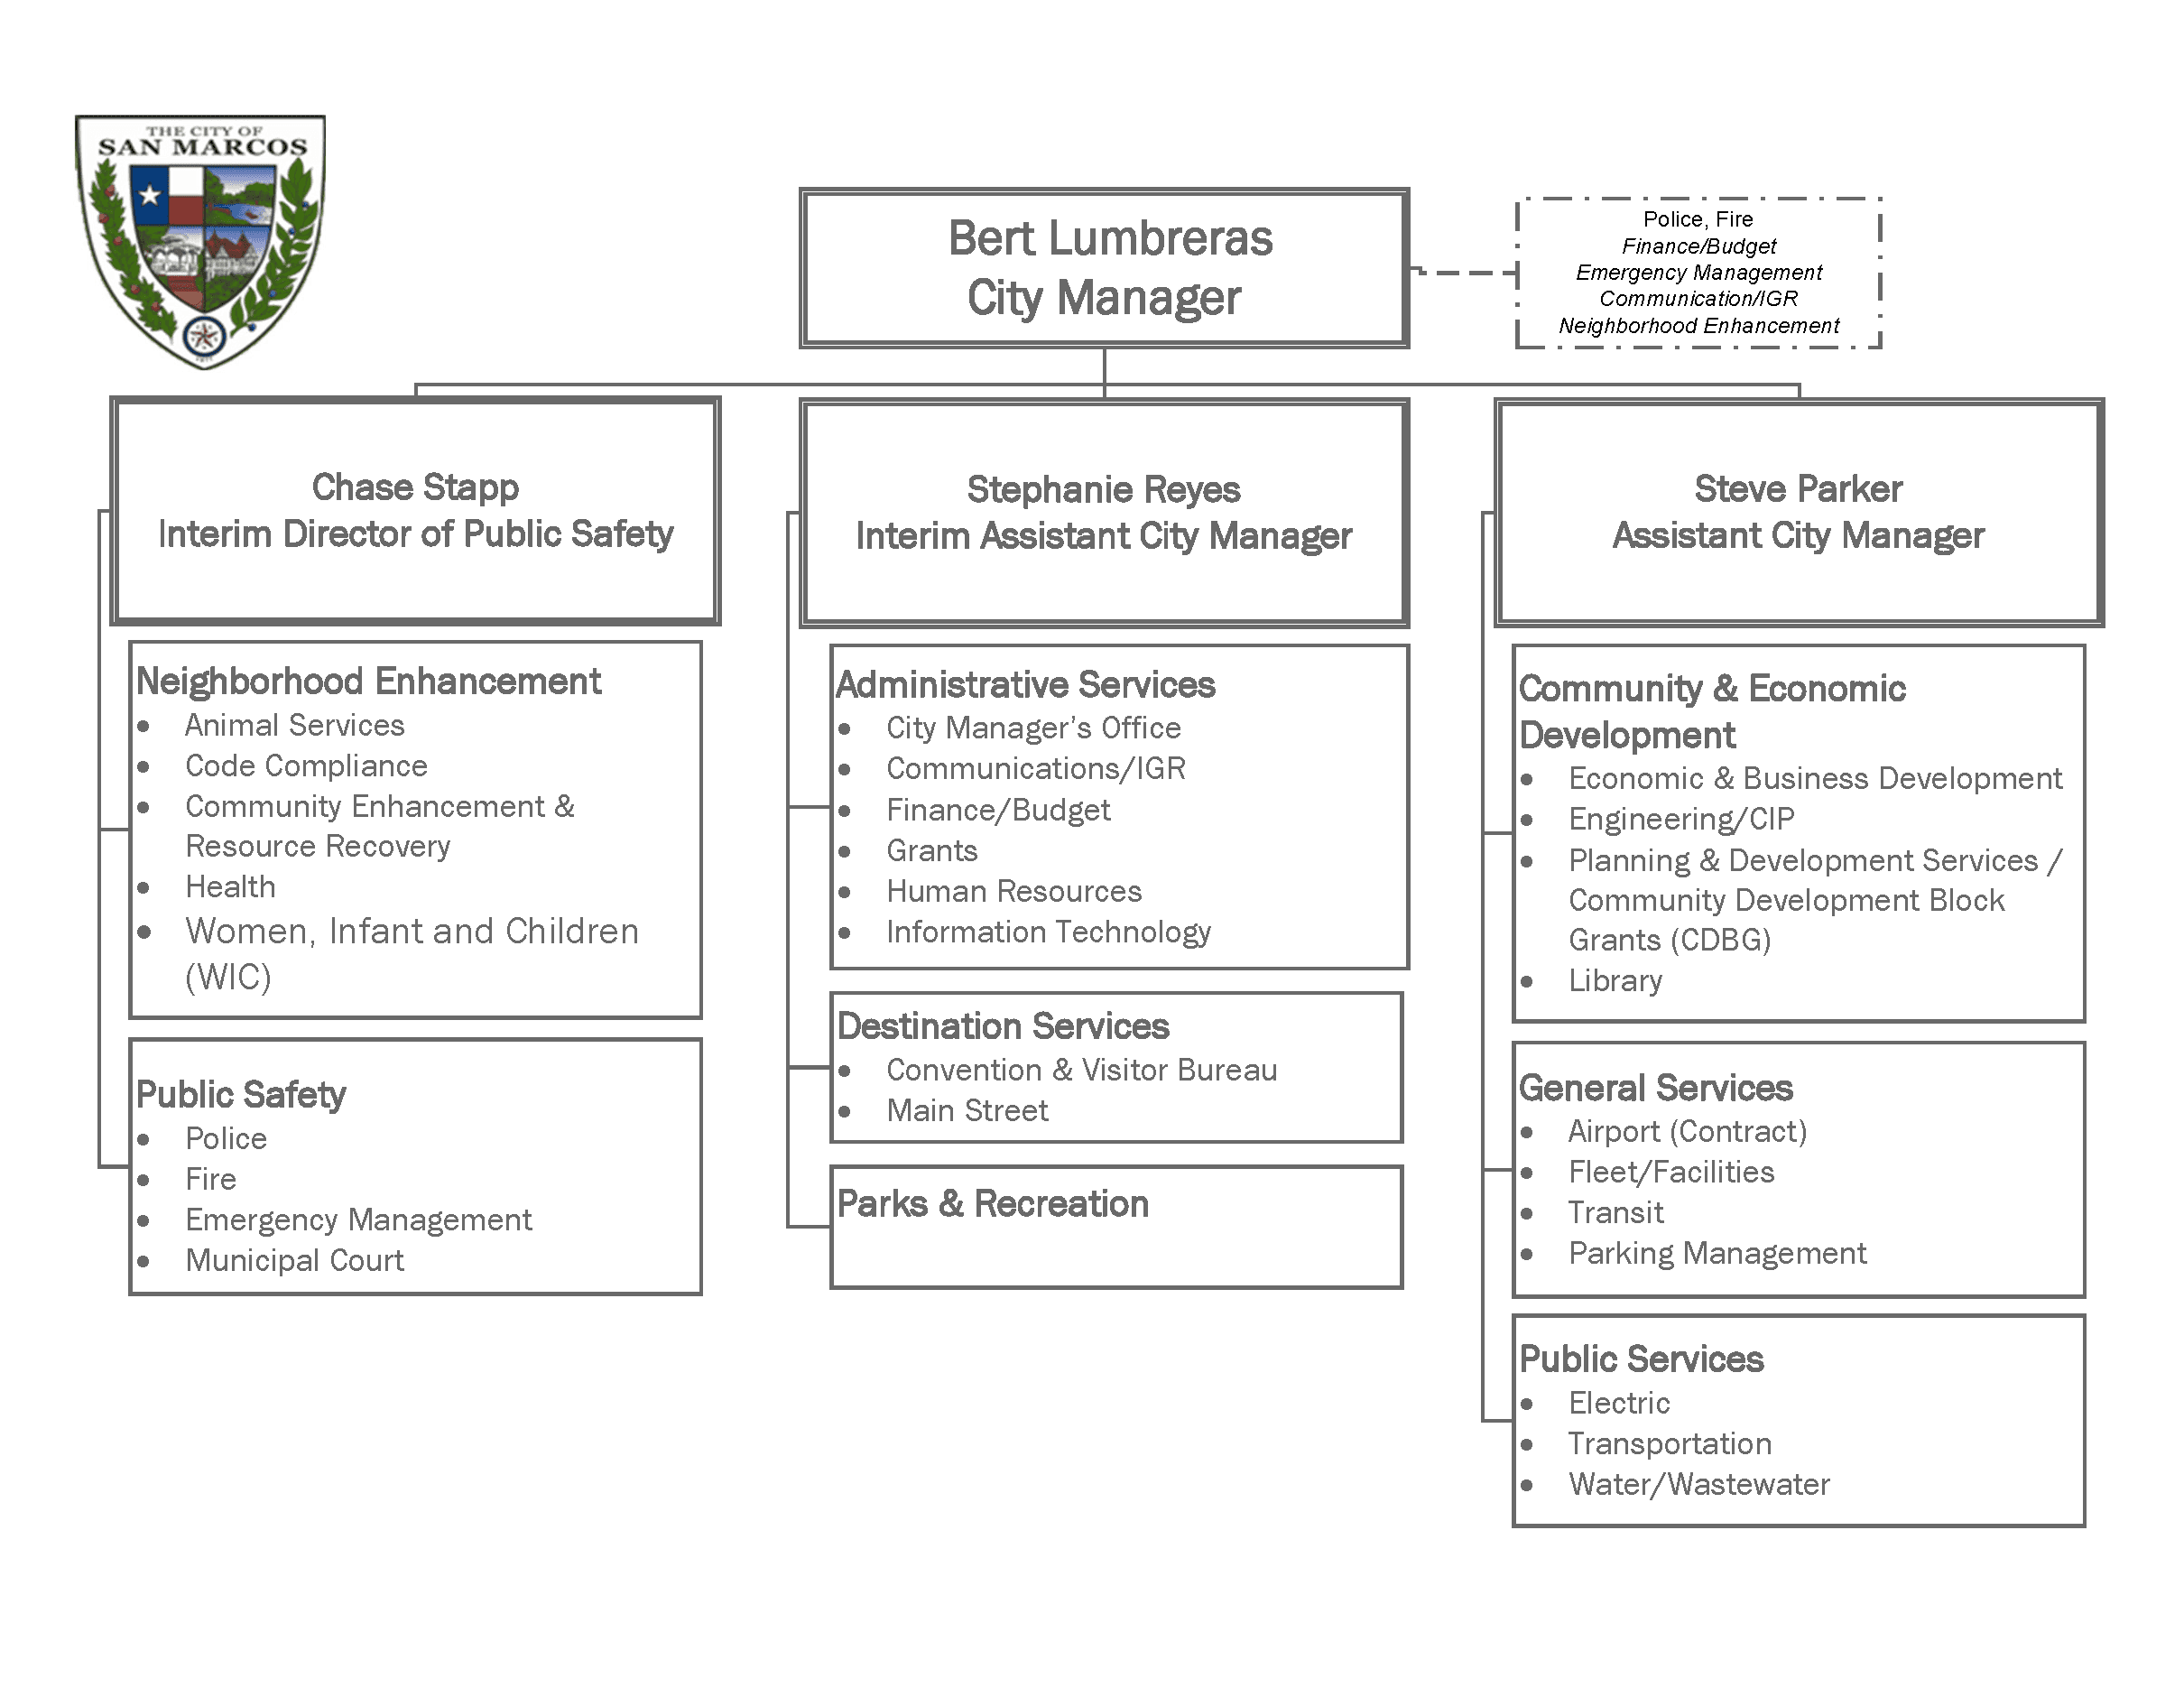 Organizational Chart showing the different city departments